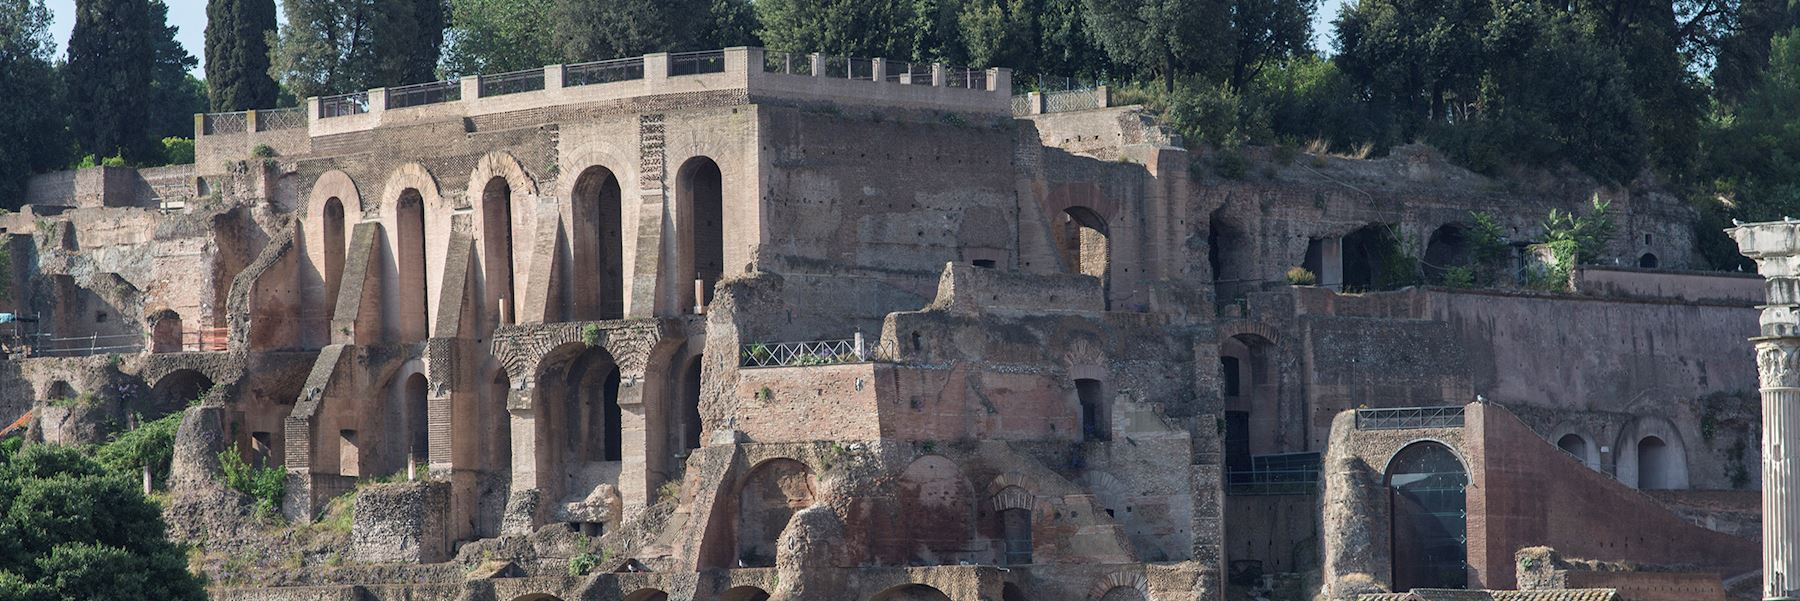 Ancient and Imperial Rome: Colosseum and Forum